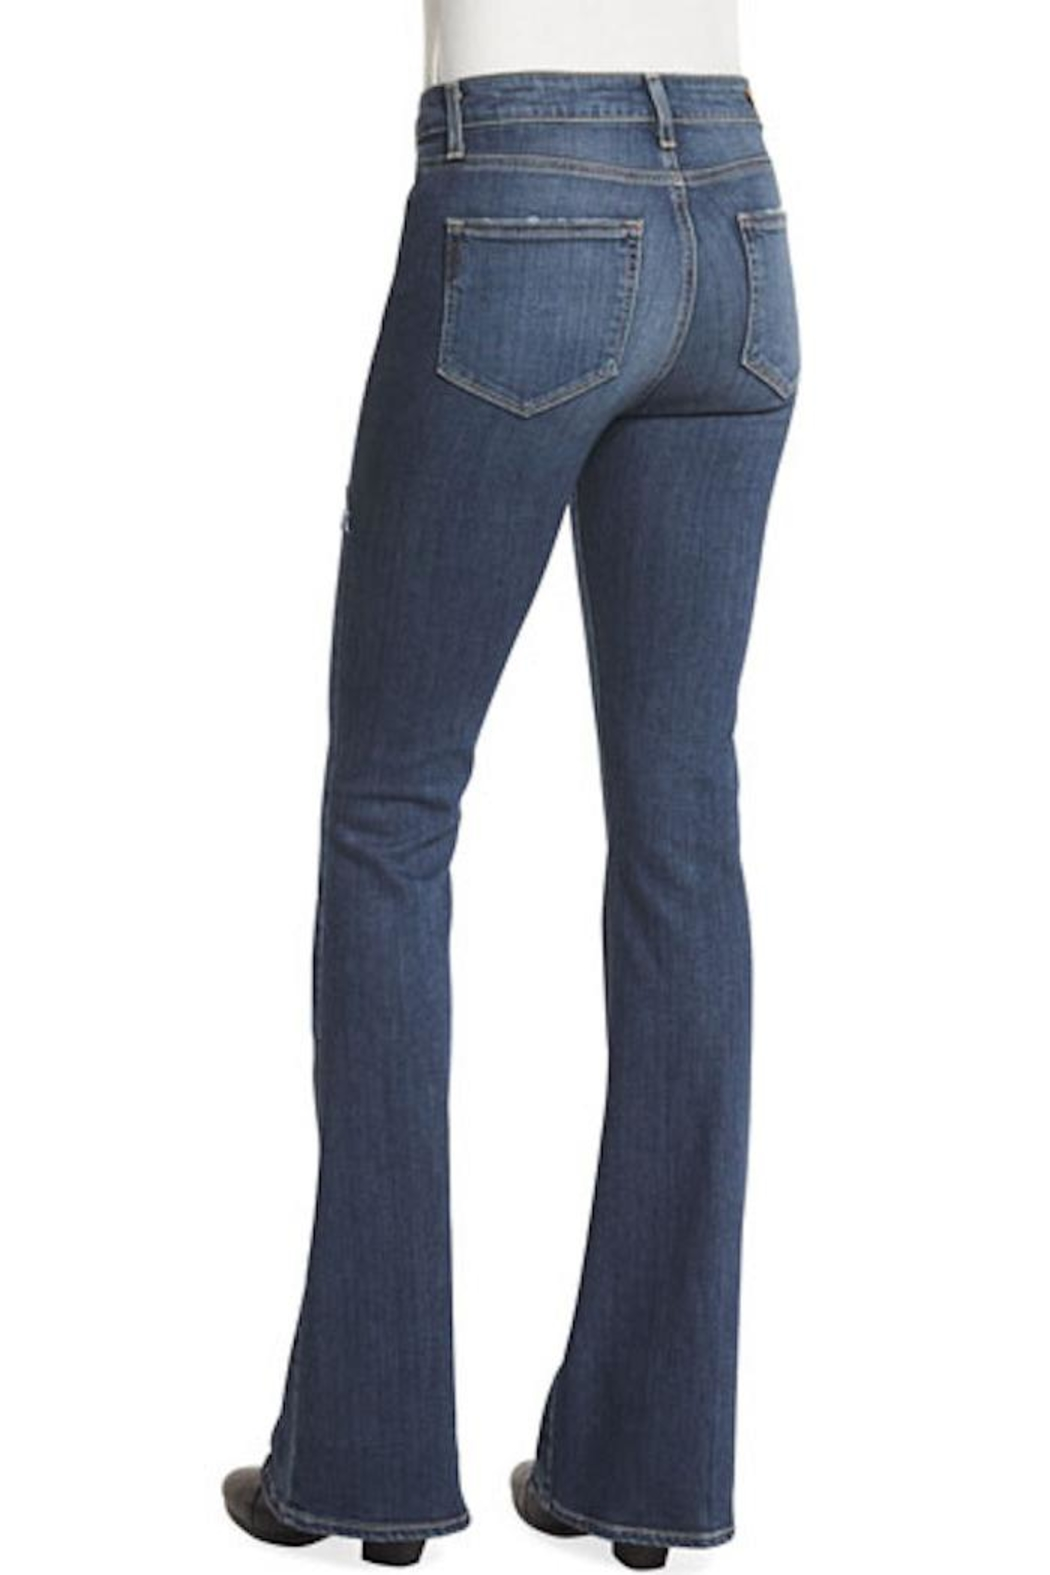 Paige Denim Distressed Flared Jeans - Front Full Image